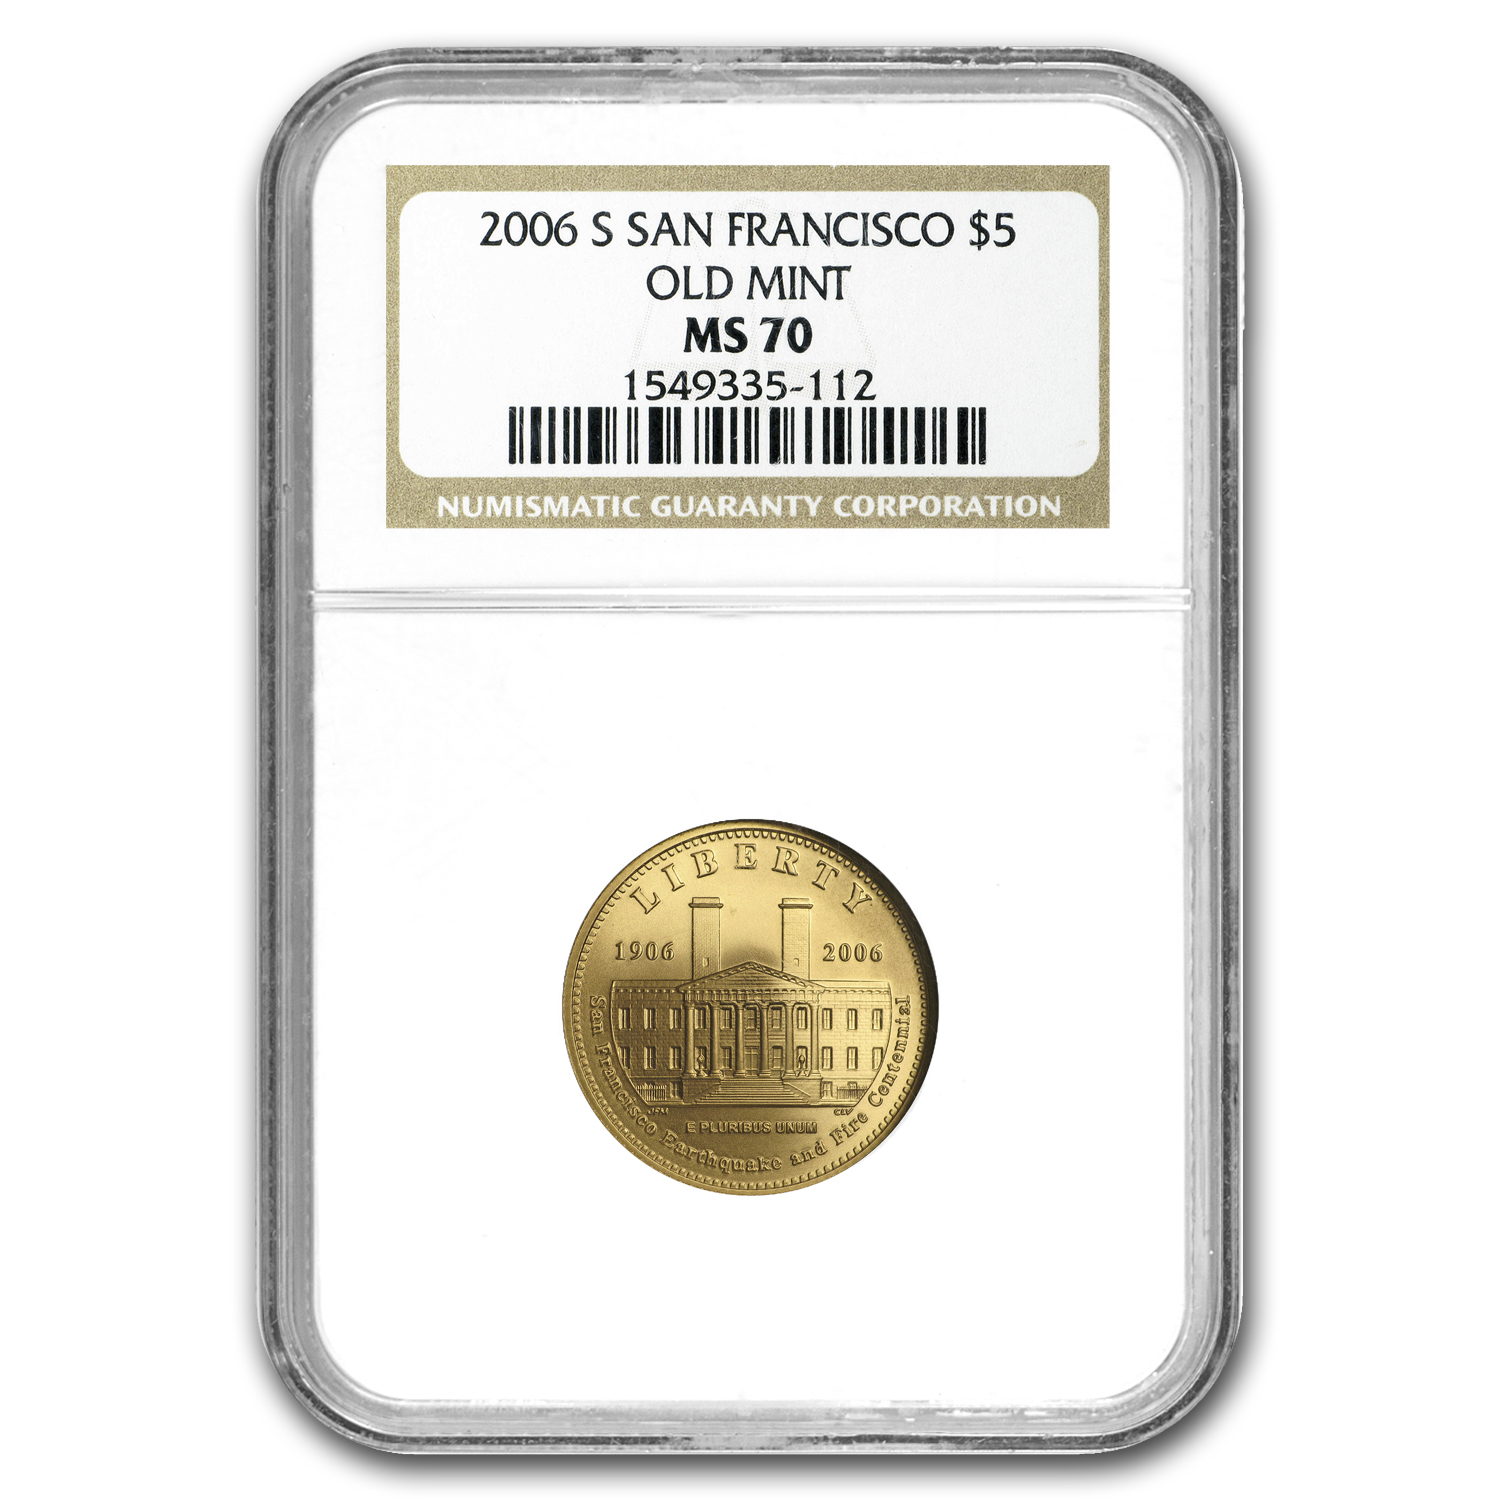 2006-S $5 Gold Commem San Francisco Old Mint MS-70 NGC